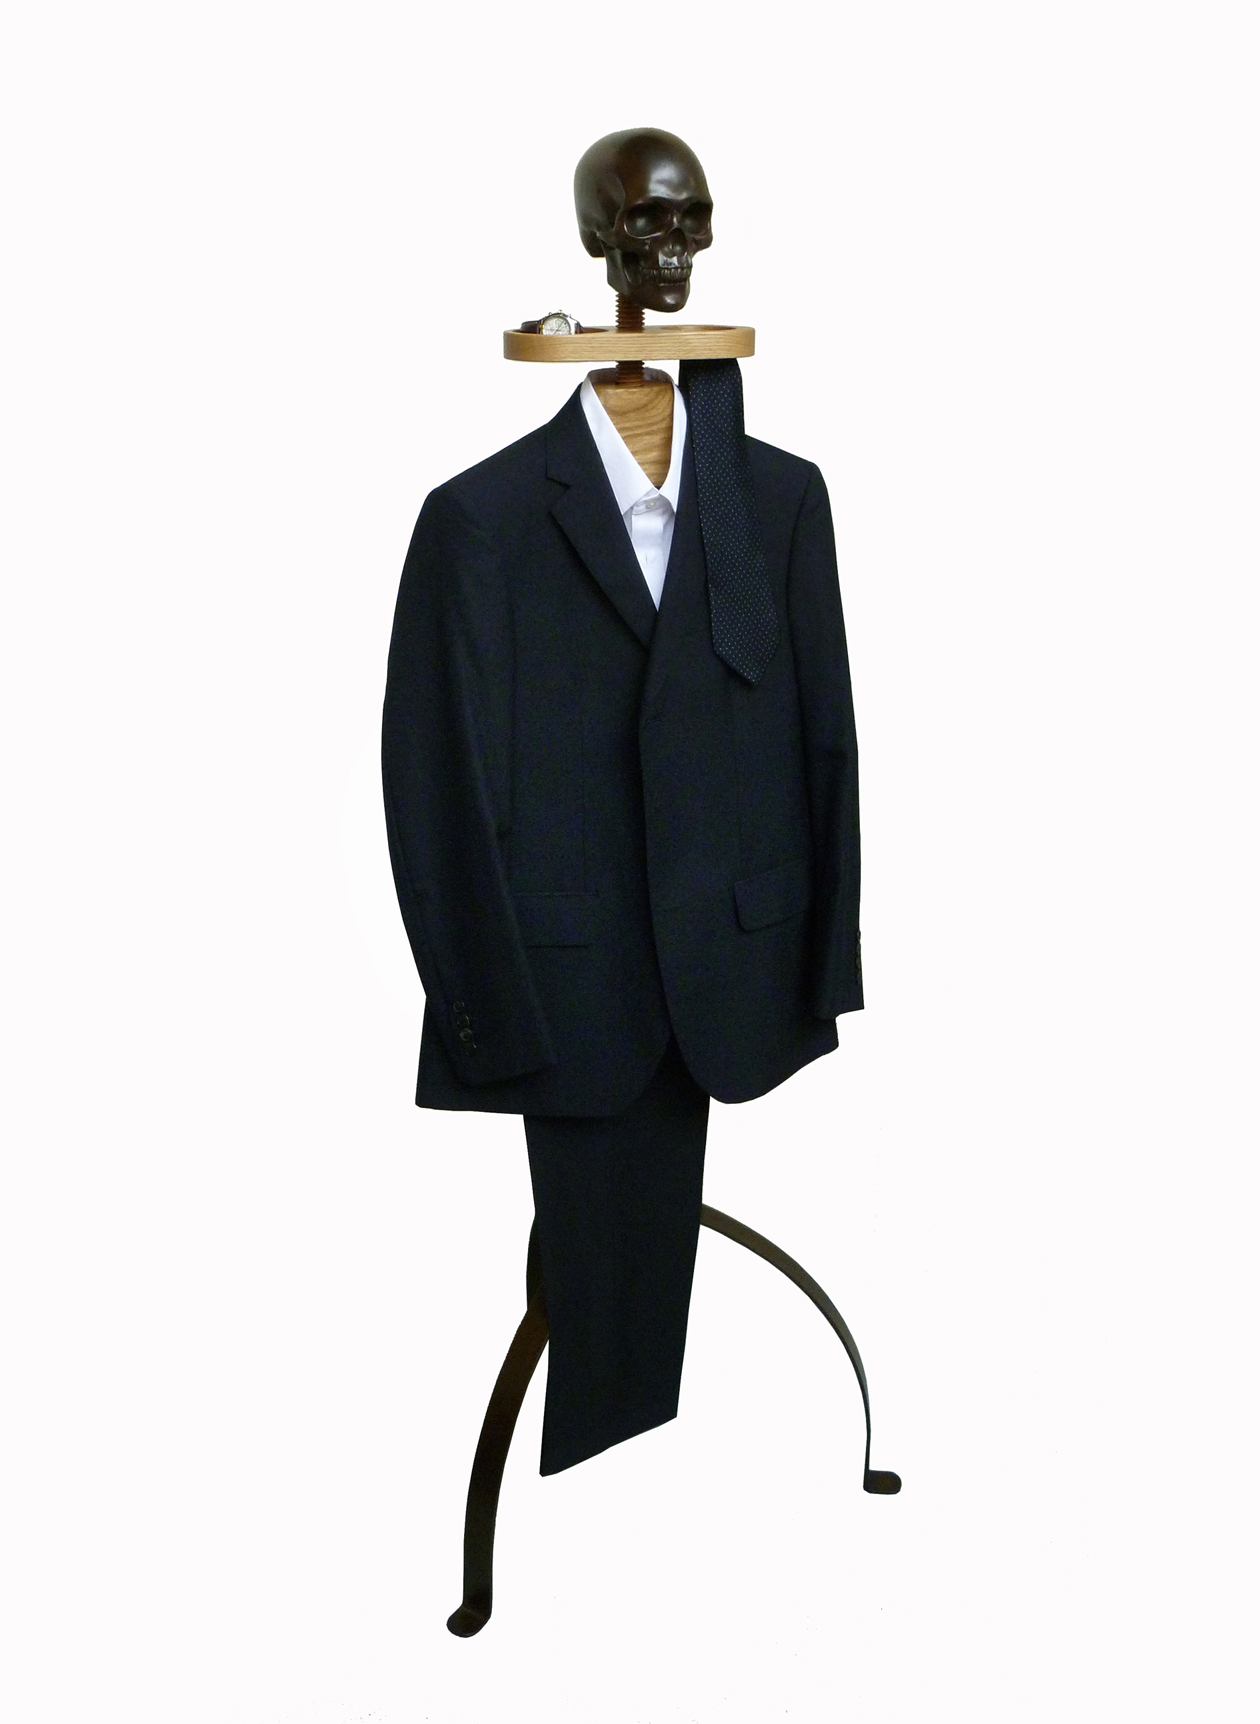 The hatstand valet